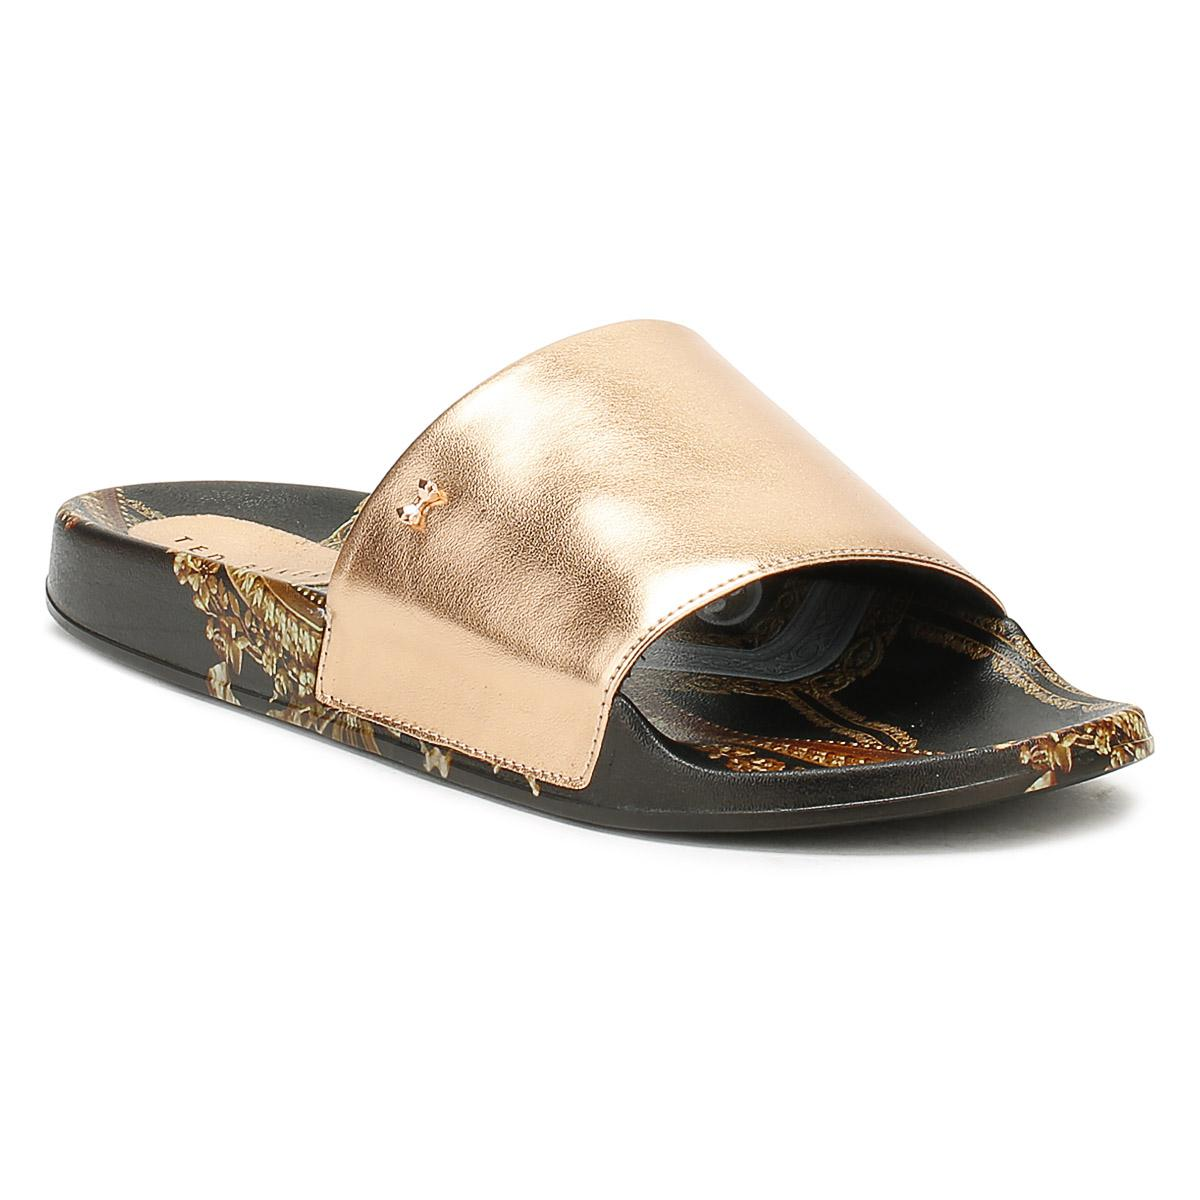 3ce942a7a Ted Baker Womens Black Aveline Slides in Black - Lyst